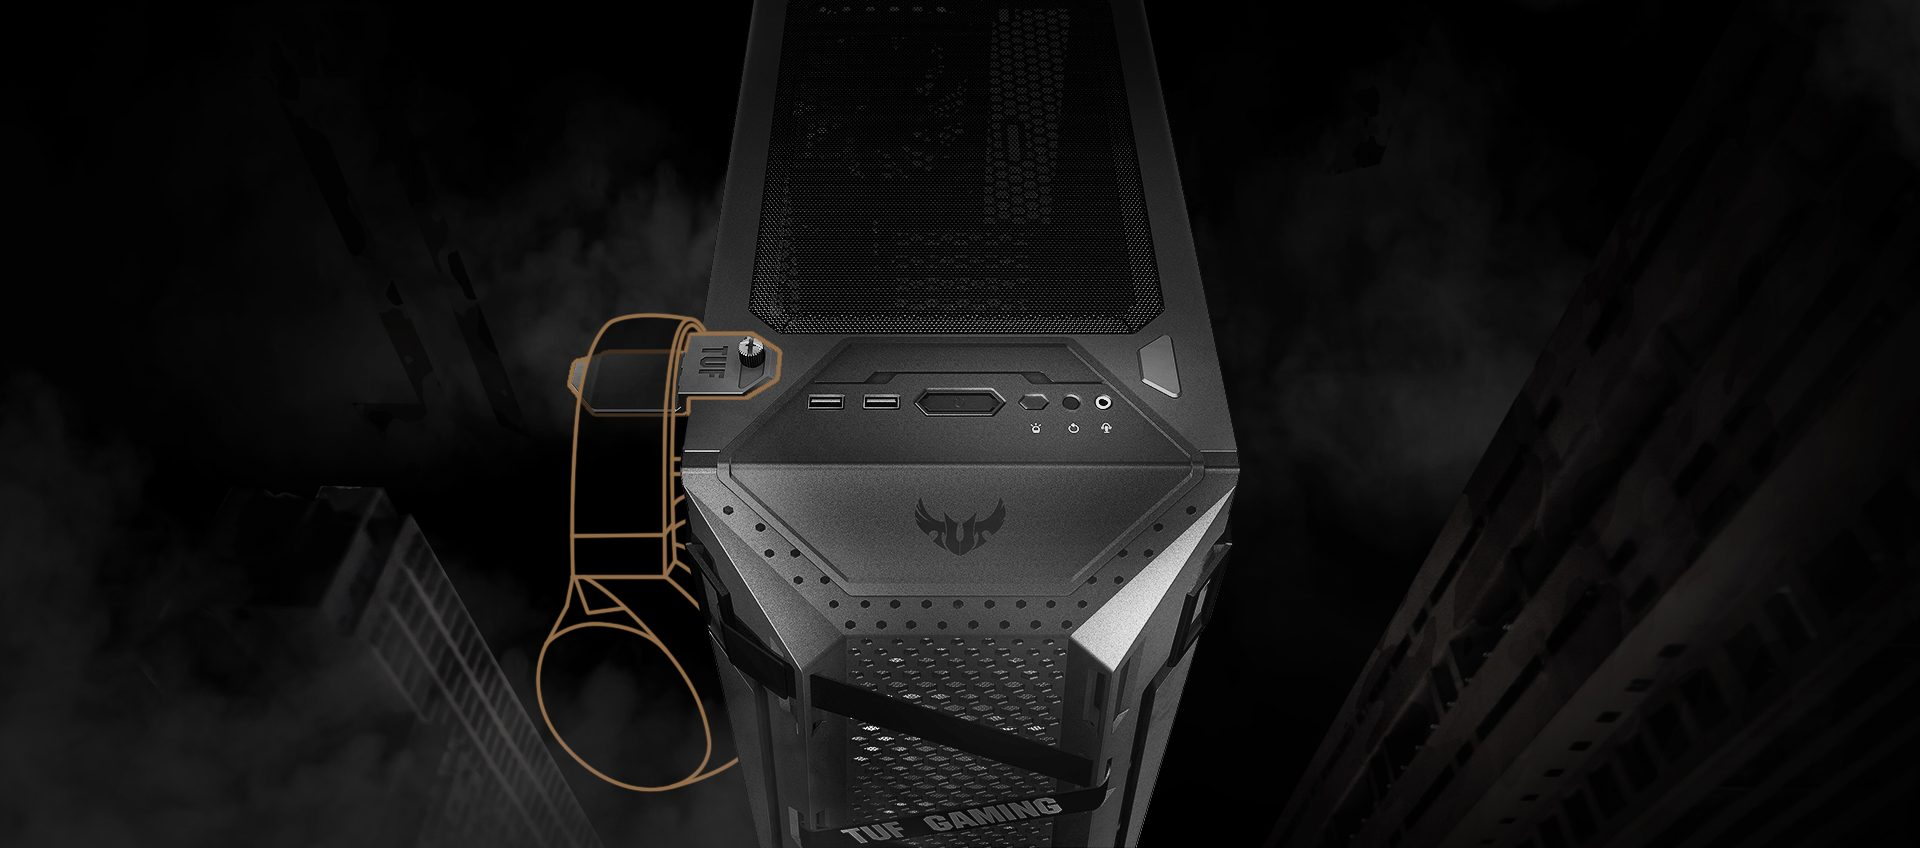 2 asus tuf gaming gt301 rgb tempered glass usb 3 2 mid tower kasa 4298 - ASUS TUF GAMING GT301 RGB Tempered Glass USB 3.2 Mid Tower Kasa